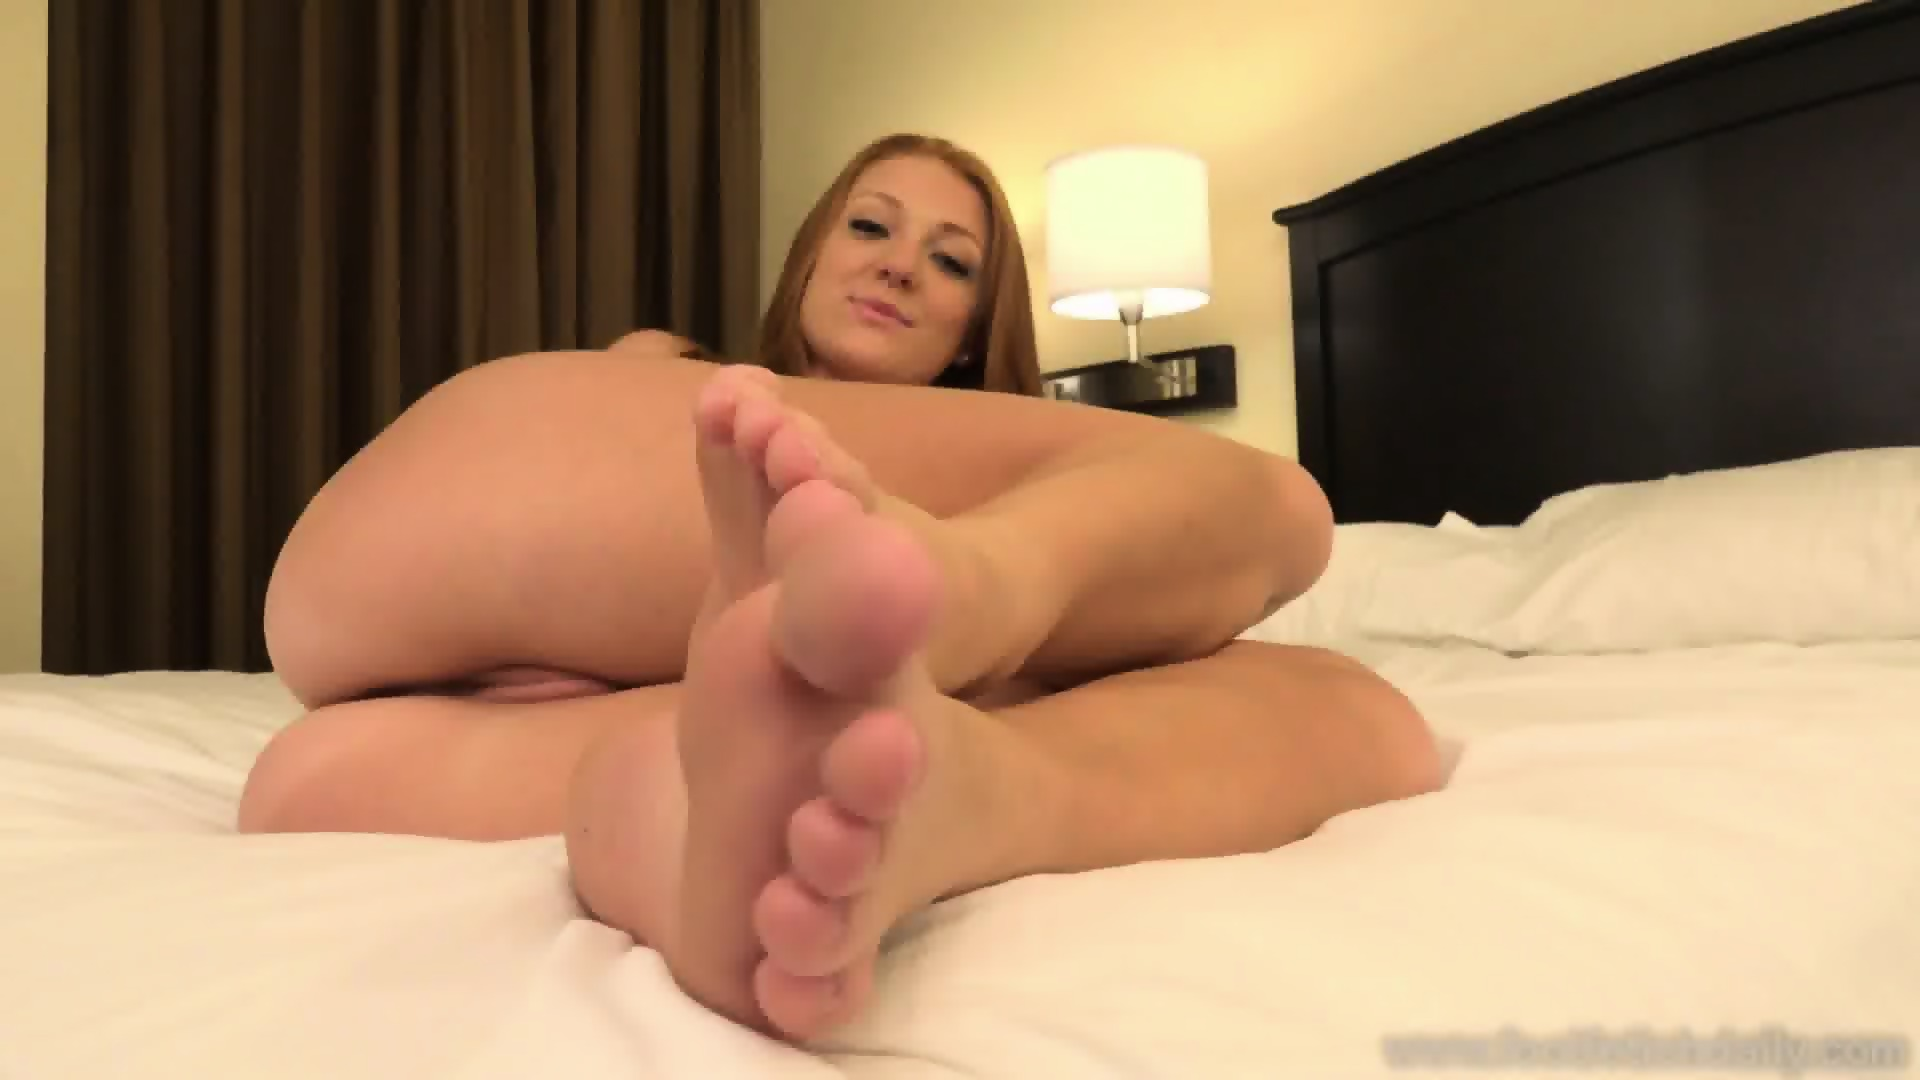 Phrase... Sexy feet naked